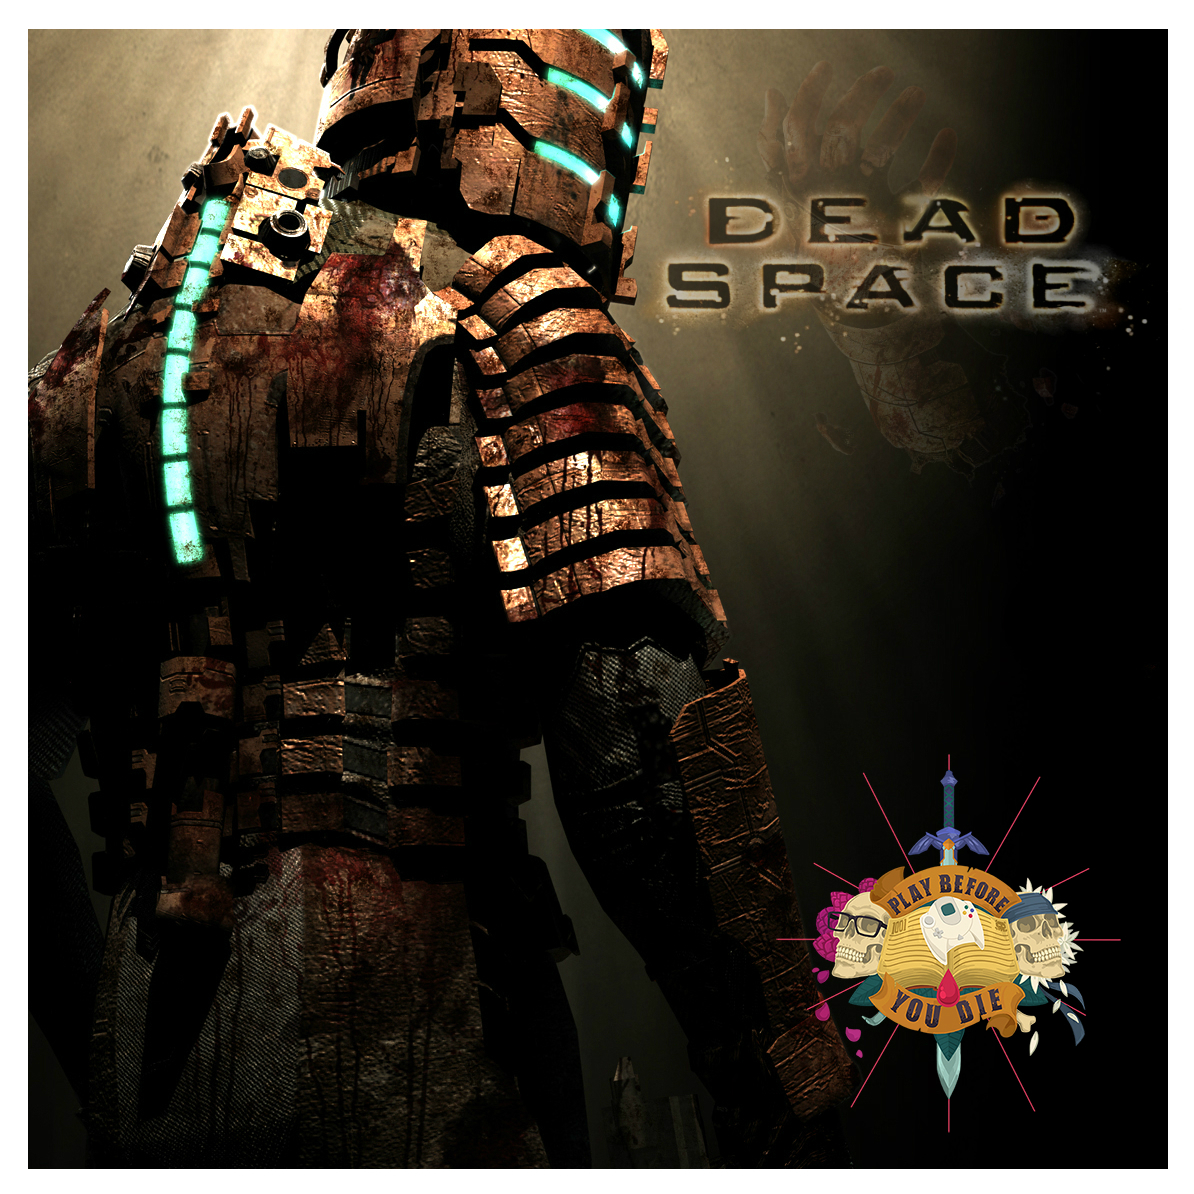 Dead Space v.2